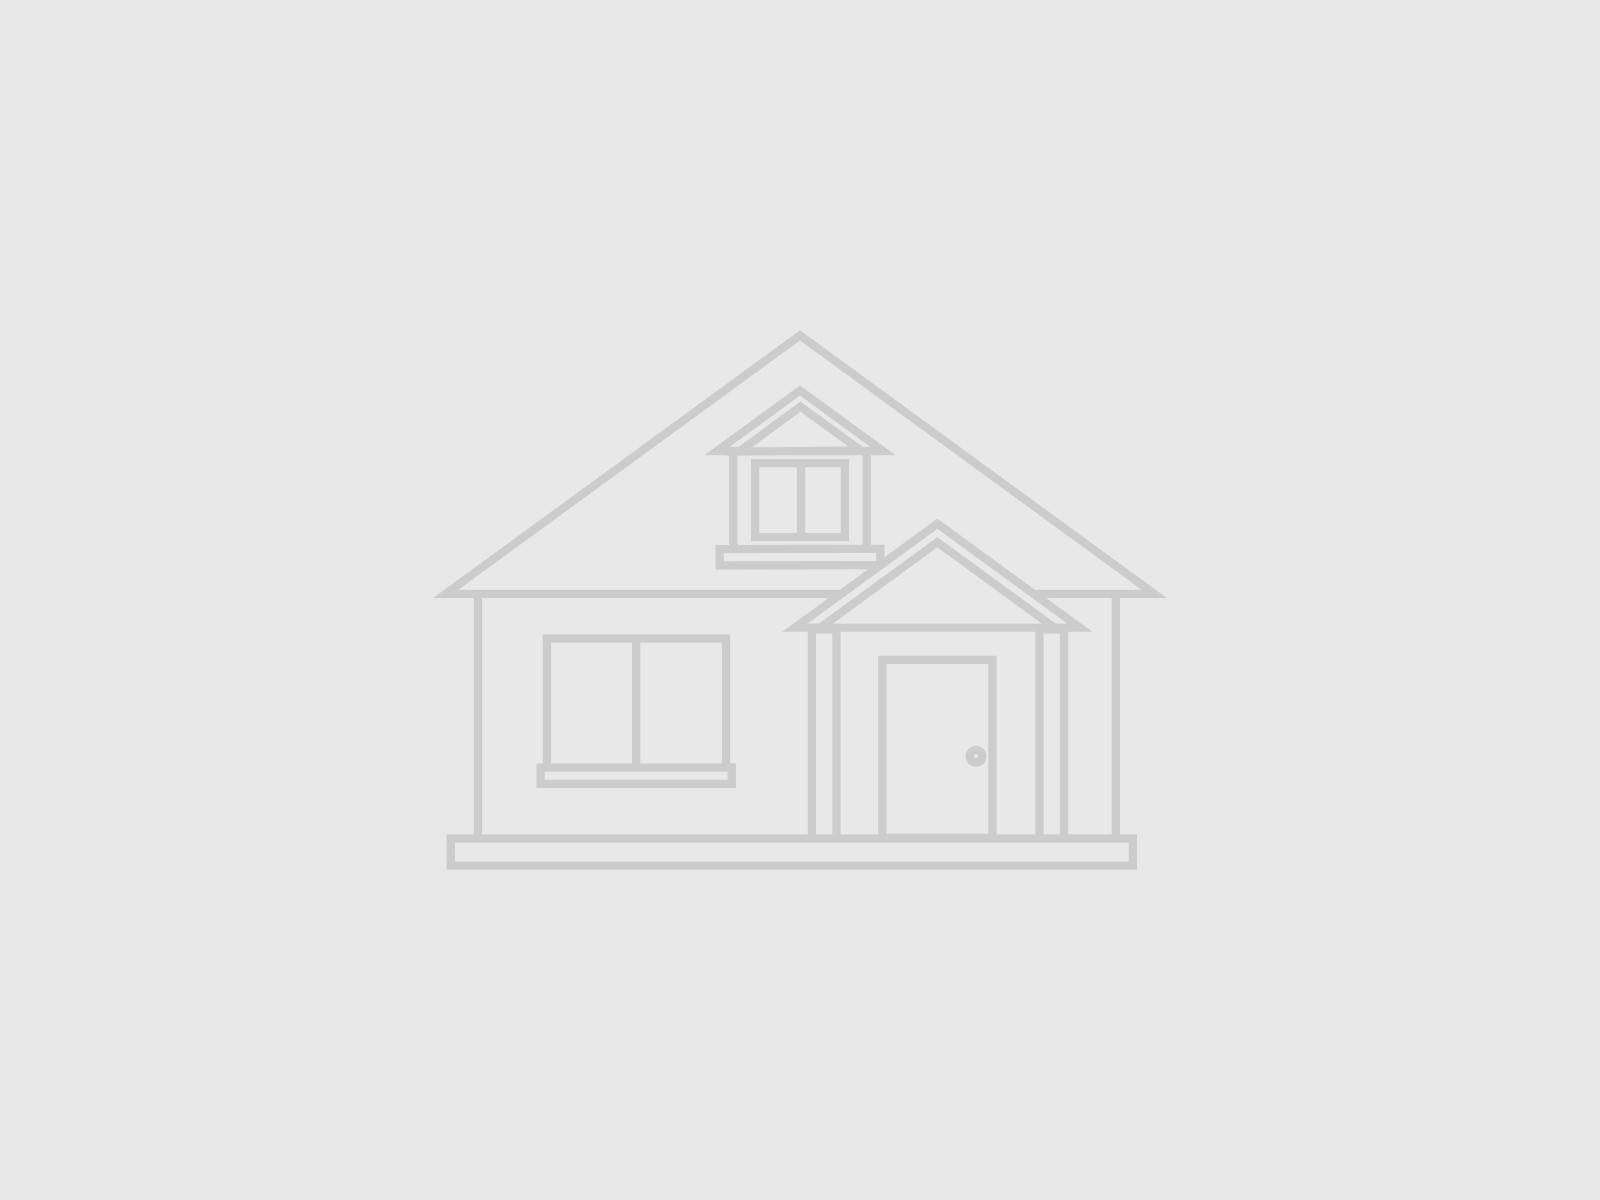 Single Family Homes for Sale at 1808 Springs Road, Vallejo Vallejo, California 94591 United States